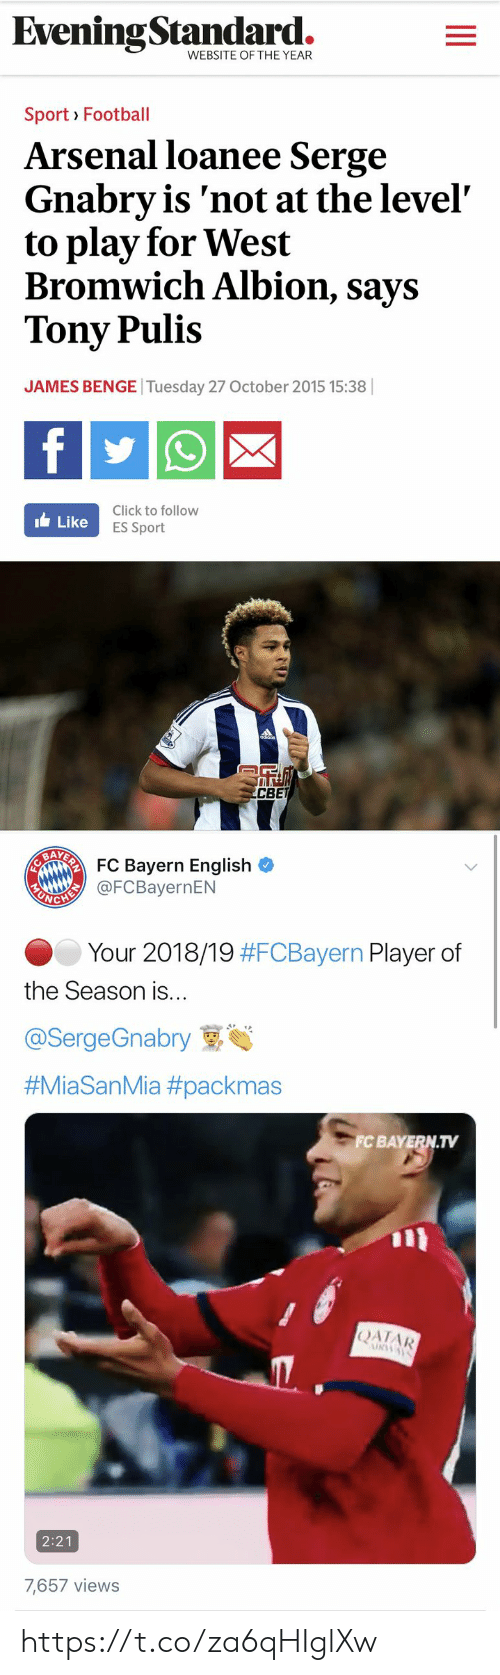 fc bayern: EveningStandard.  WEBSITE OF THE YEAR  Sport Football  Arsenal loanee Serge  Gnabry is 'not at the level  to play for West  Bromwich Albion, says  Tony Pulis  JAMES BENGE Tuesday 27 October 2015 15:38 ||  f  Click to follow  ILike  ES Sport  R  CBET   EAARFC Bayern English  EANGHI@FCBayernEN  Your 2018/19 #FCBayern Player of  the Season is...  @SergeGnabry  #MiaSanMia #packmas  FC BAYERN.TV  |ΑΙAR  URWAY  2:21  7,657 views https://t.co/za6qHIglXw